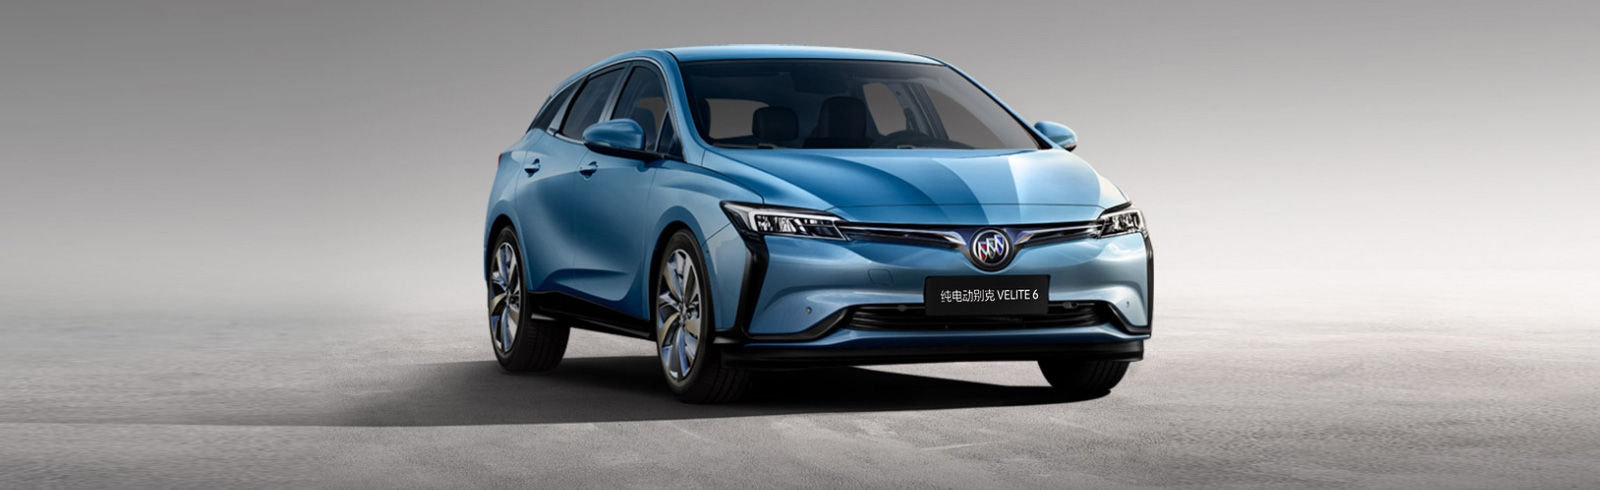 buick china opens preorders for the allelectric buick